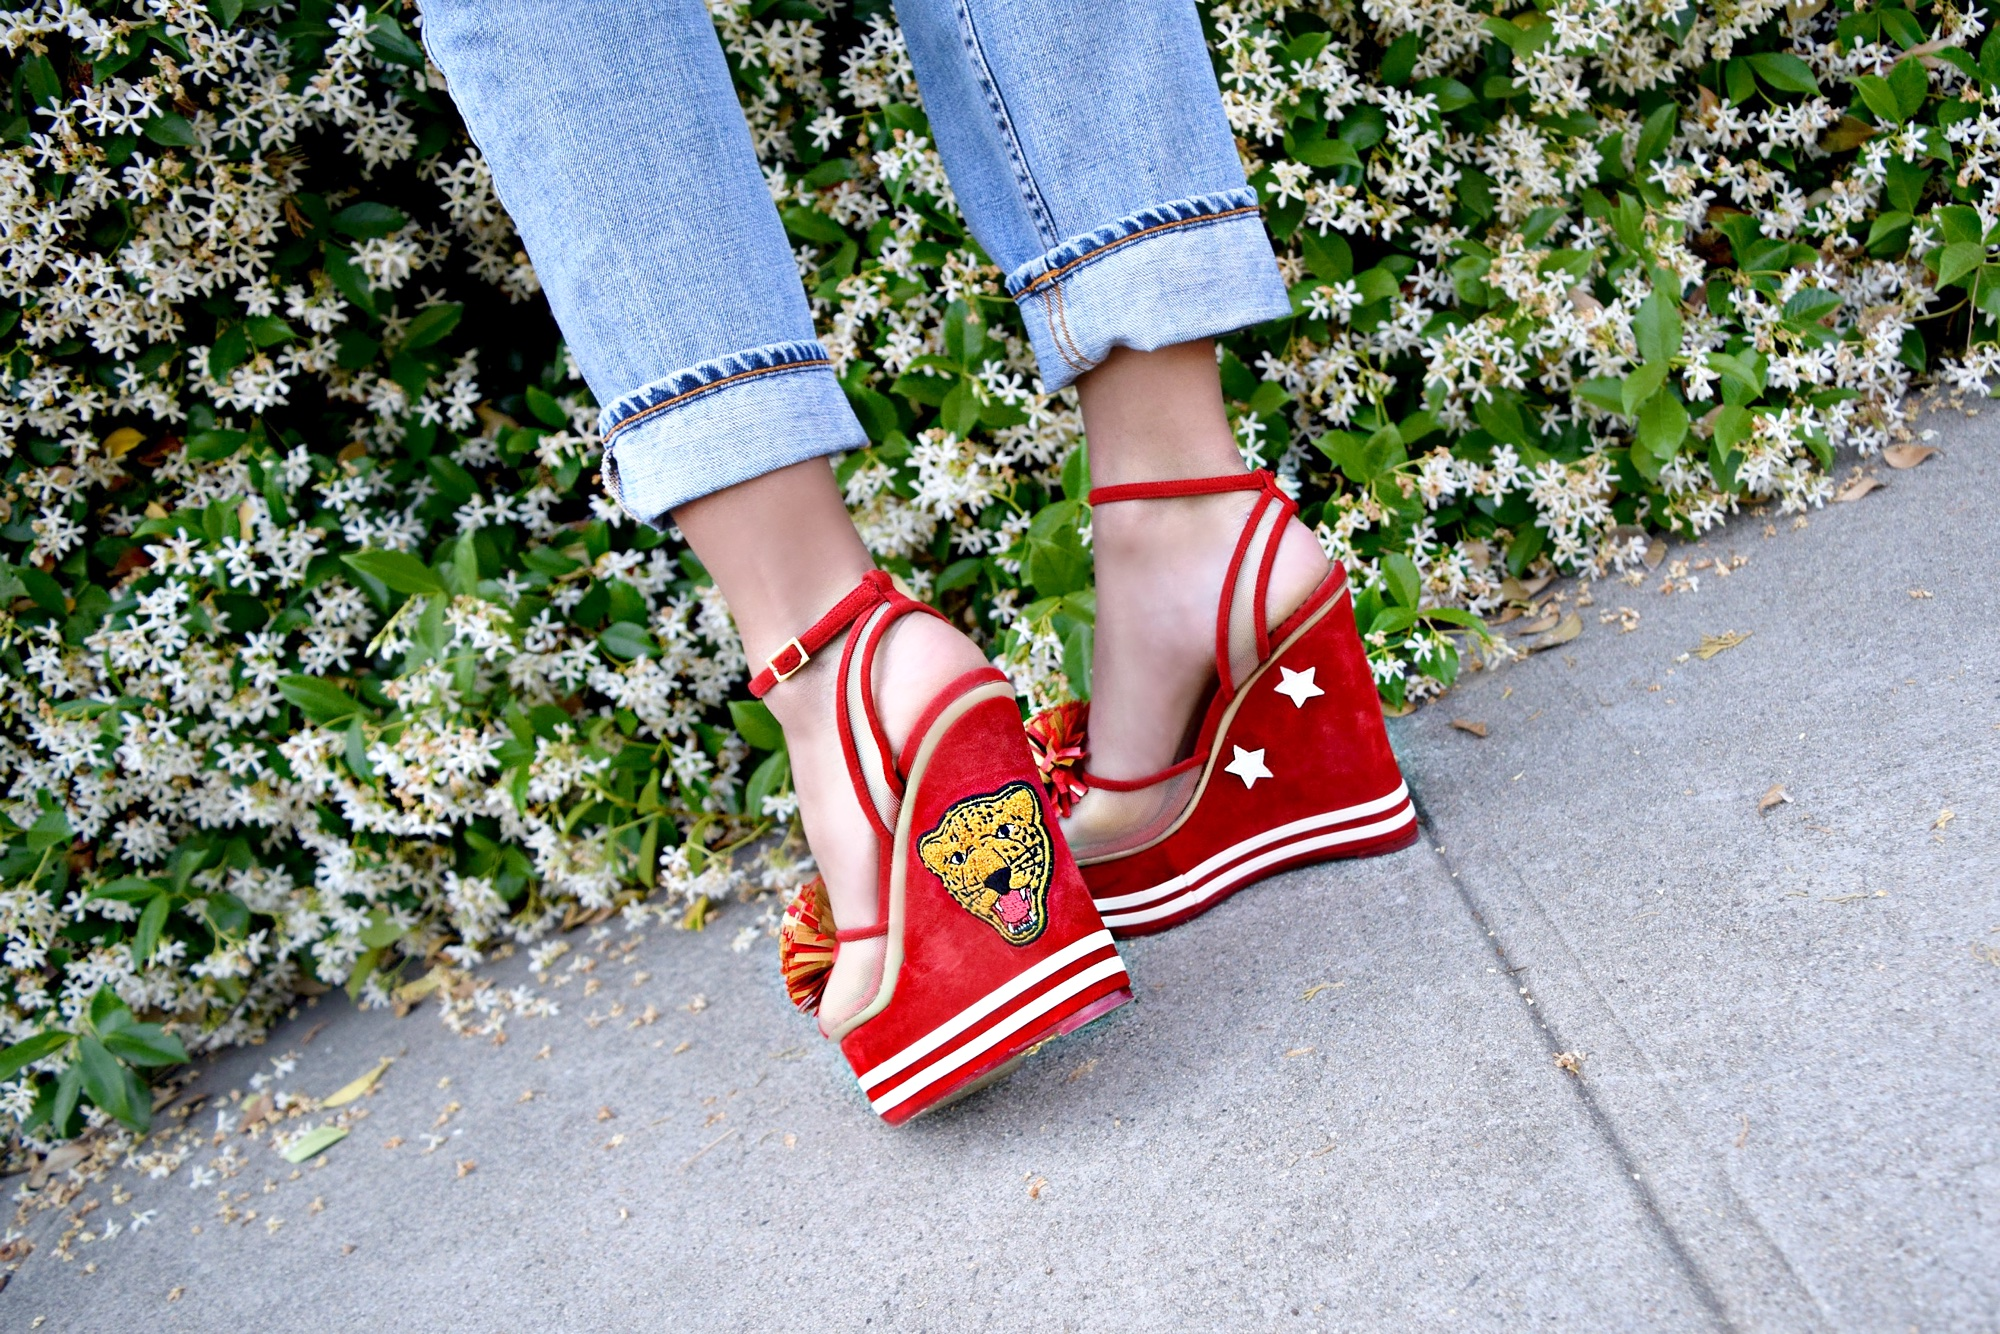 Charlotte Olympia Wedge Heels, Spring Street Style Inspiration: To Style, With Love